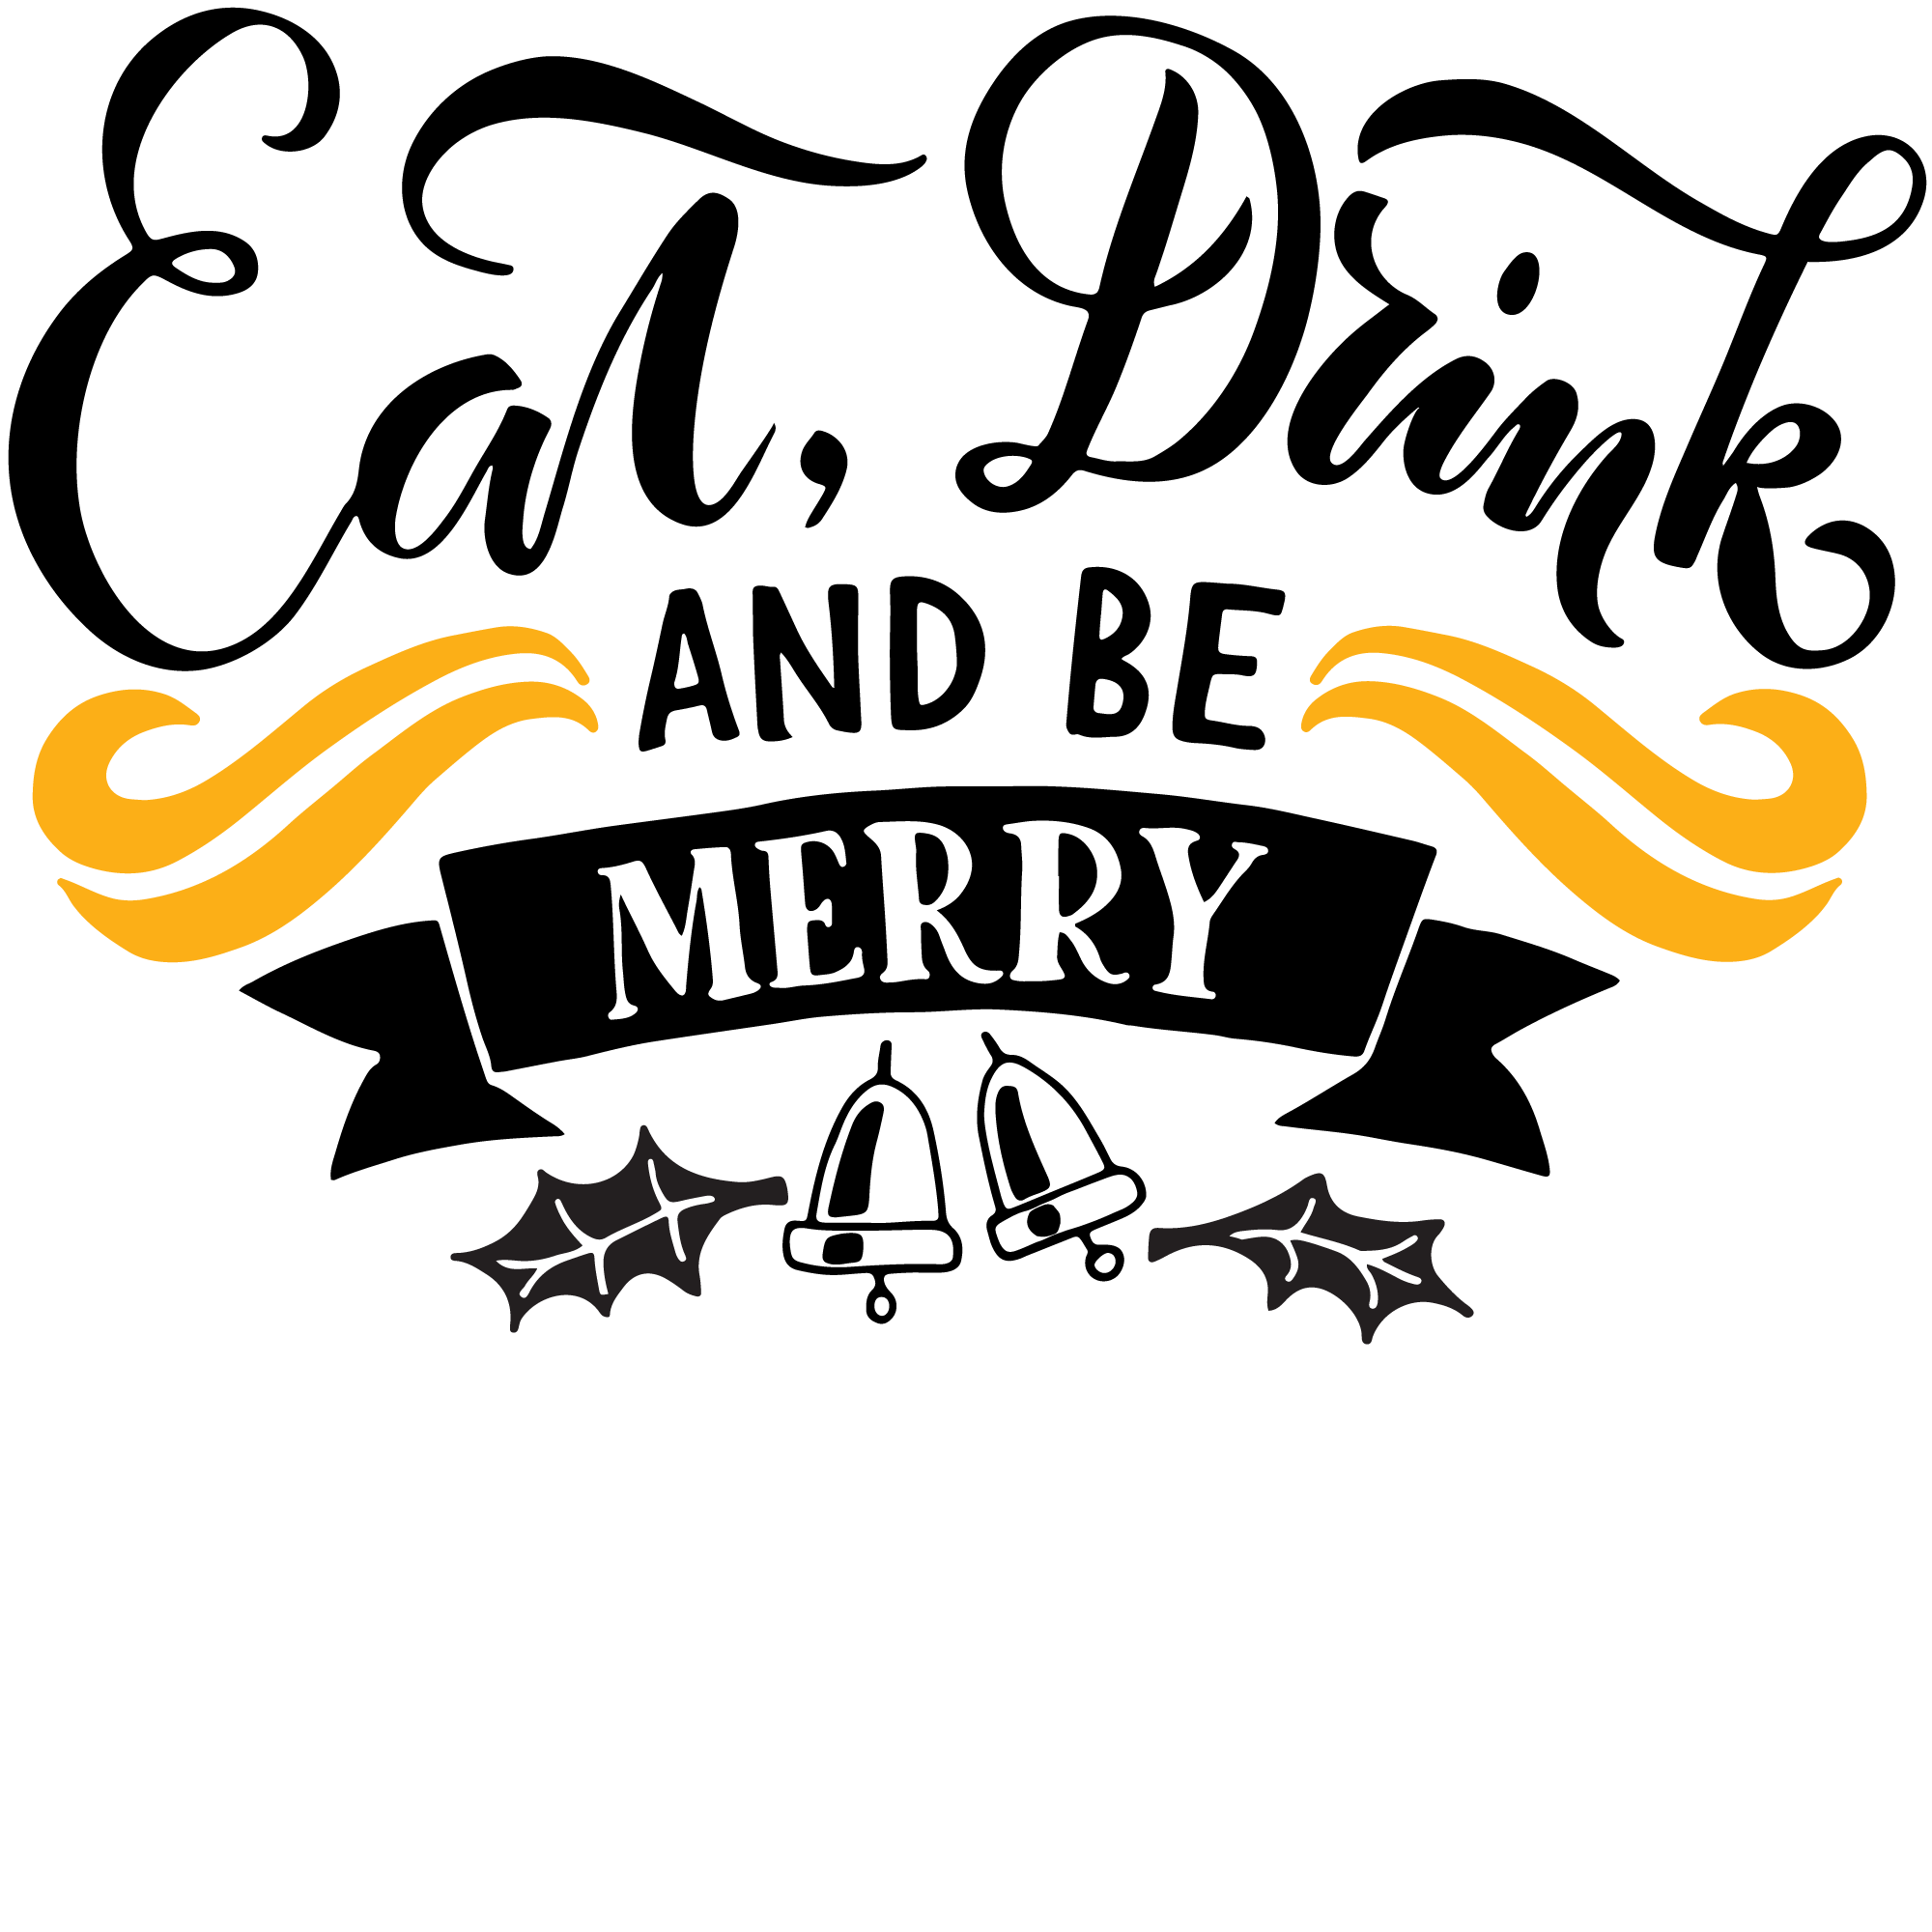 Eat drink and be merry png. Discover bristol vermont